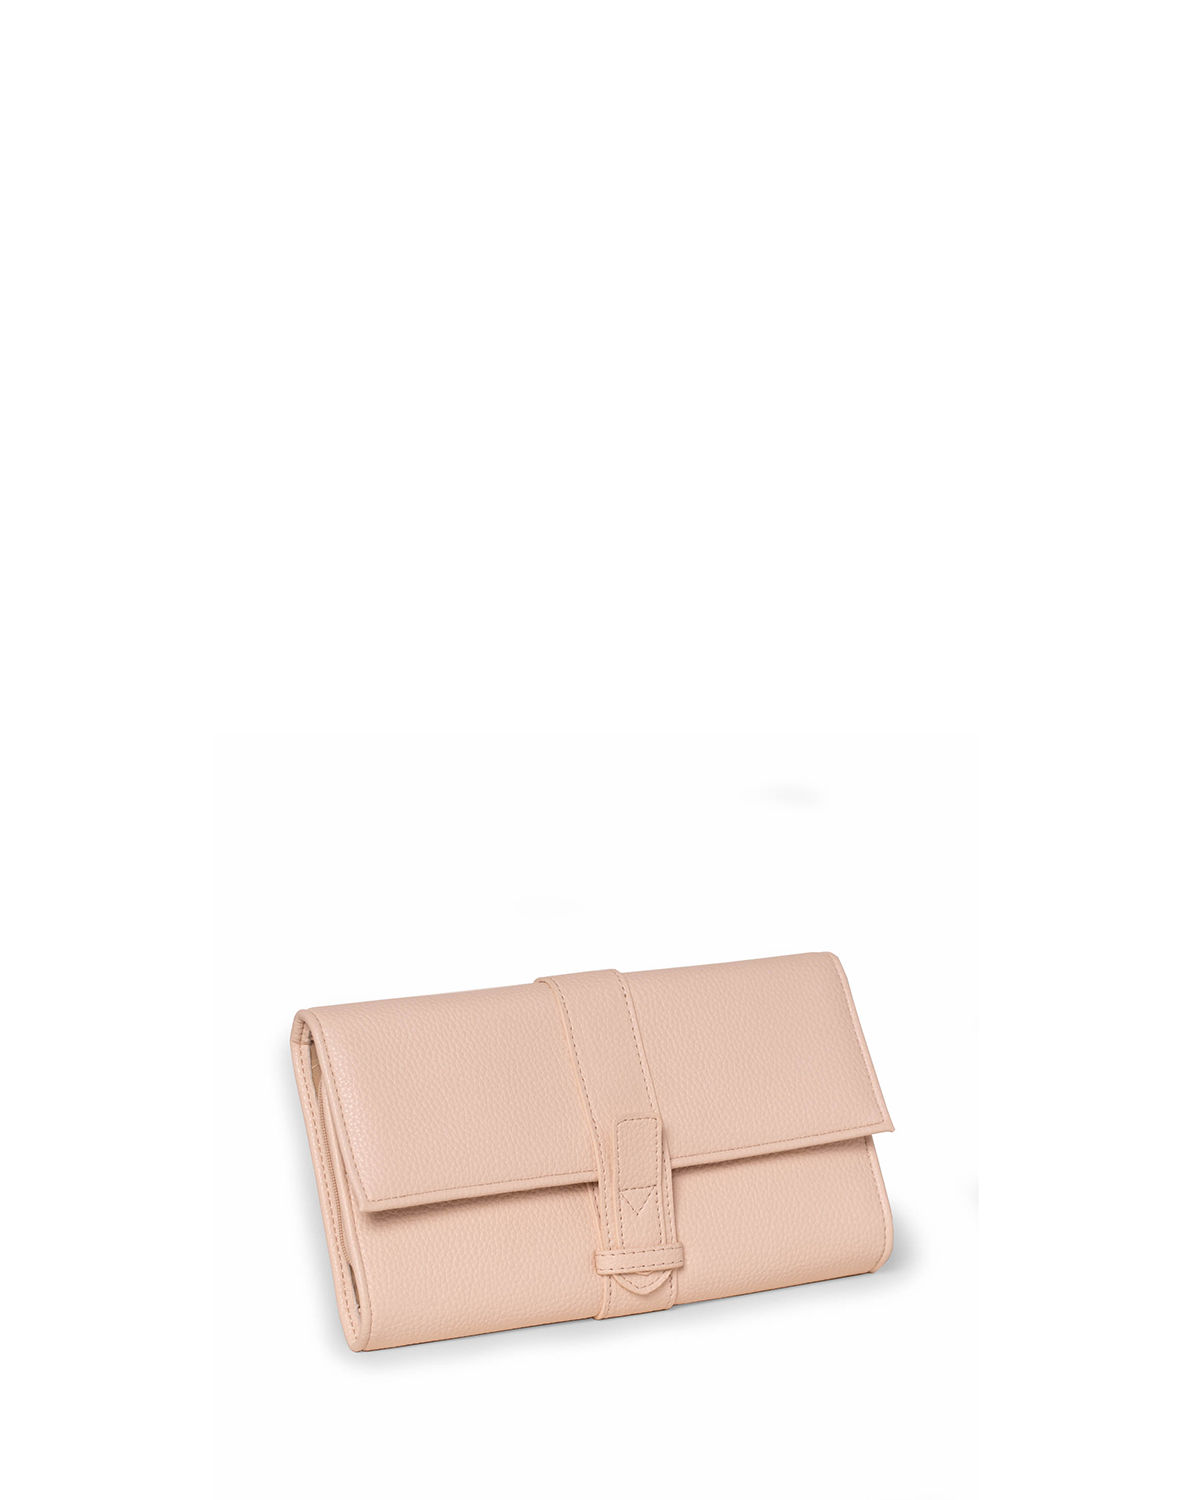 Bey-Berk HALEY JEWELRY CLUTCH